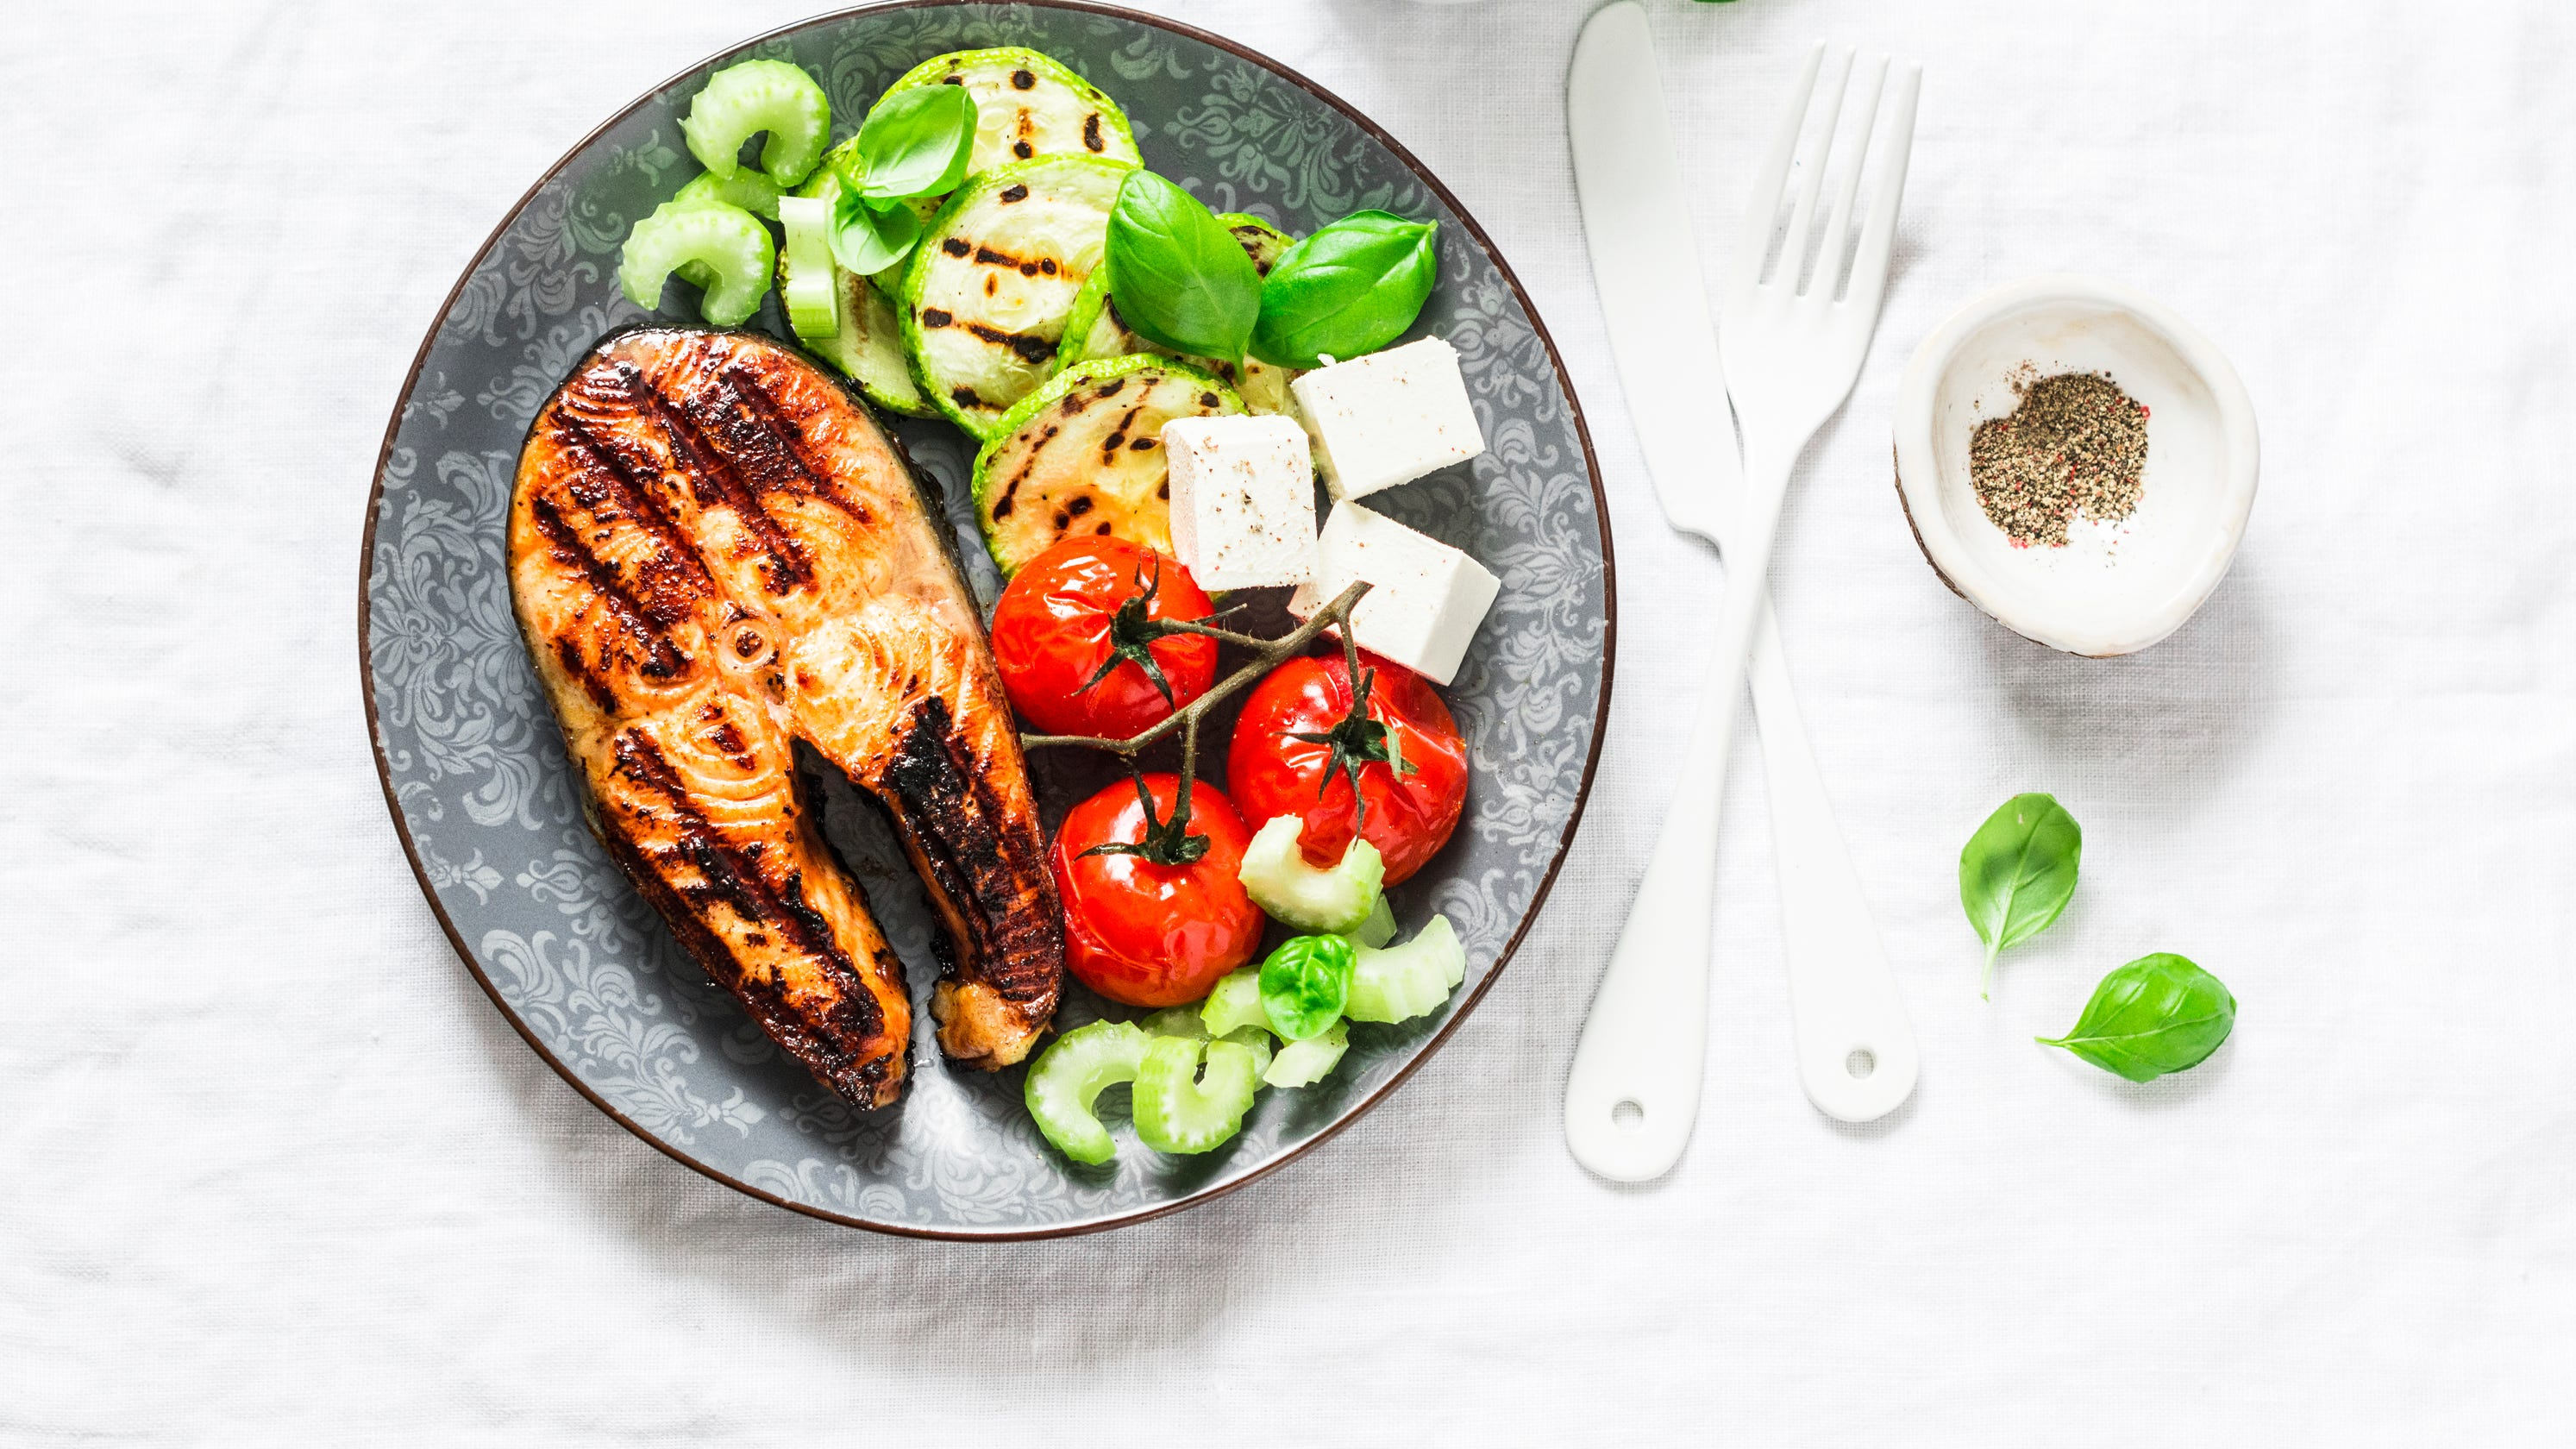 Mediterranean Diet Is Best Way To Eat In 2019, Say U.S